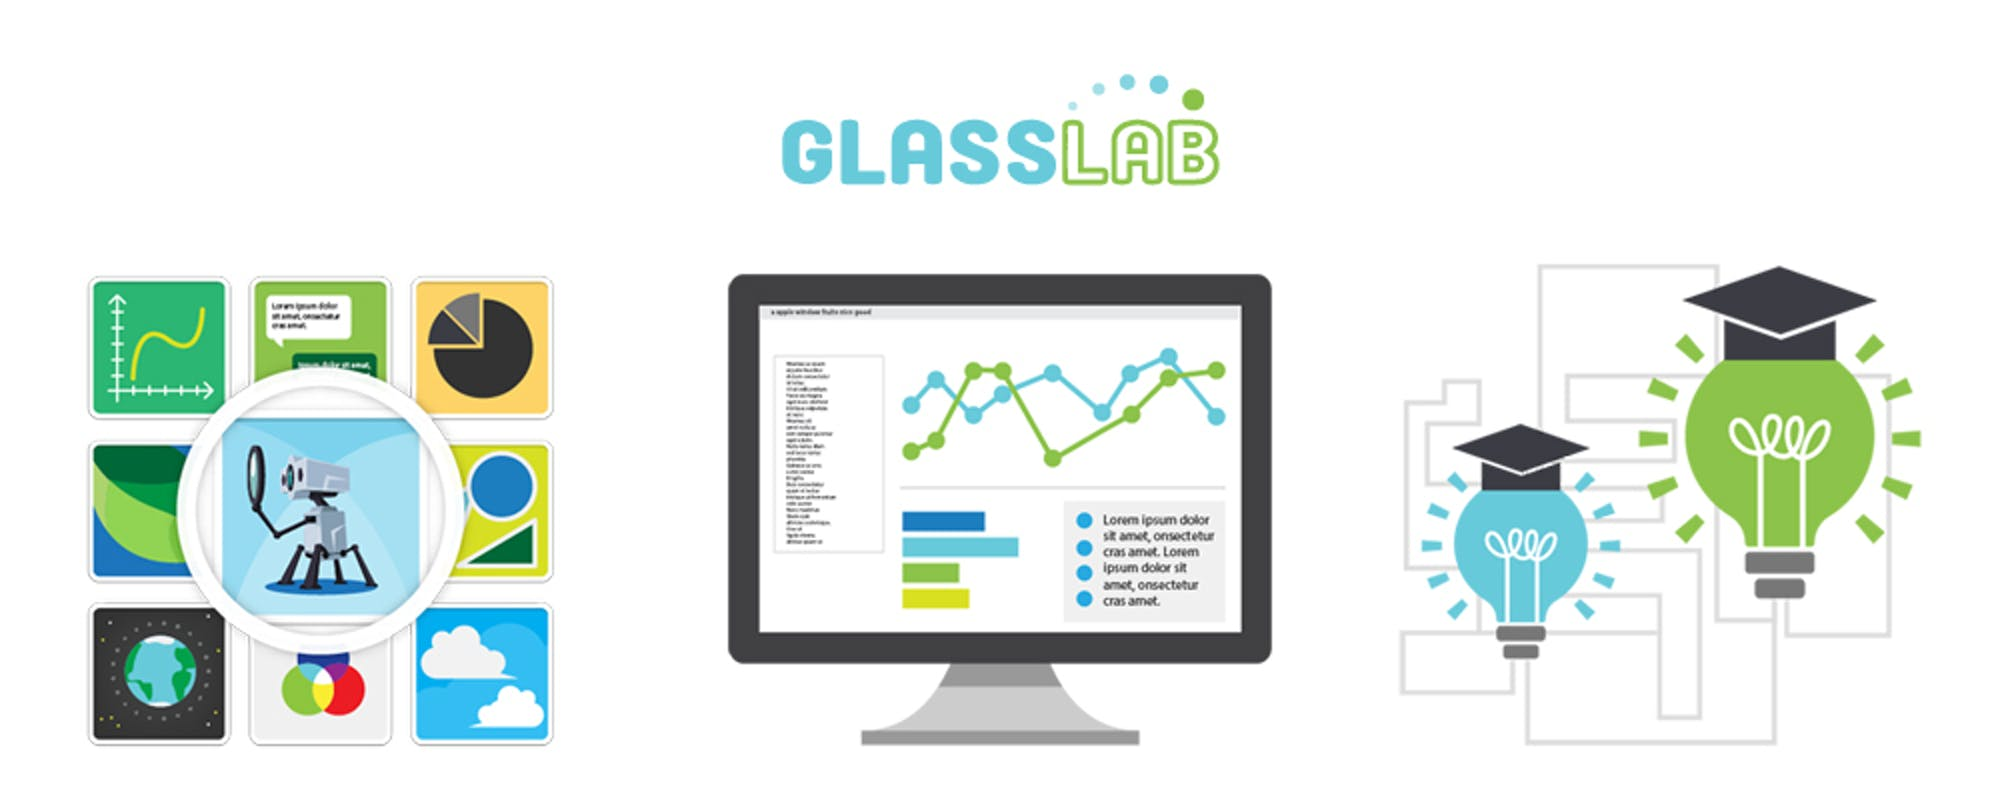 Will GlassLab Become the 'STEAM' Engine for Educational Games?